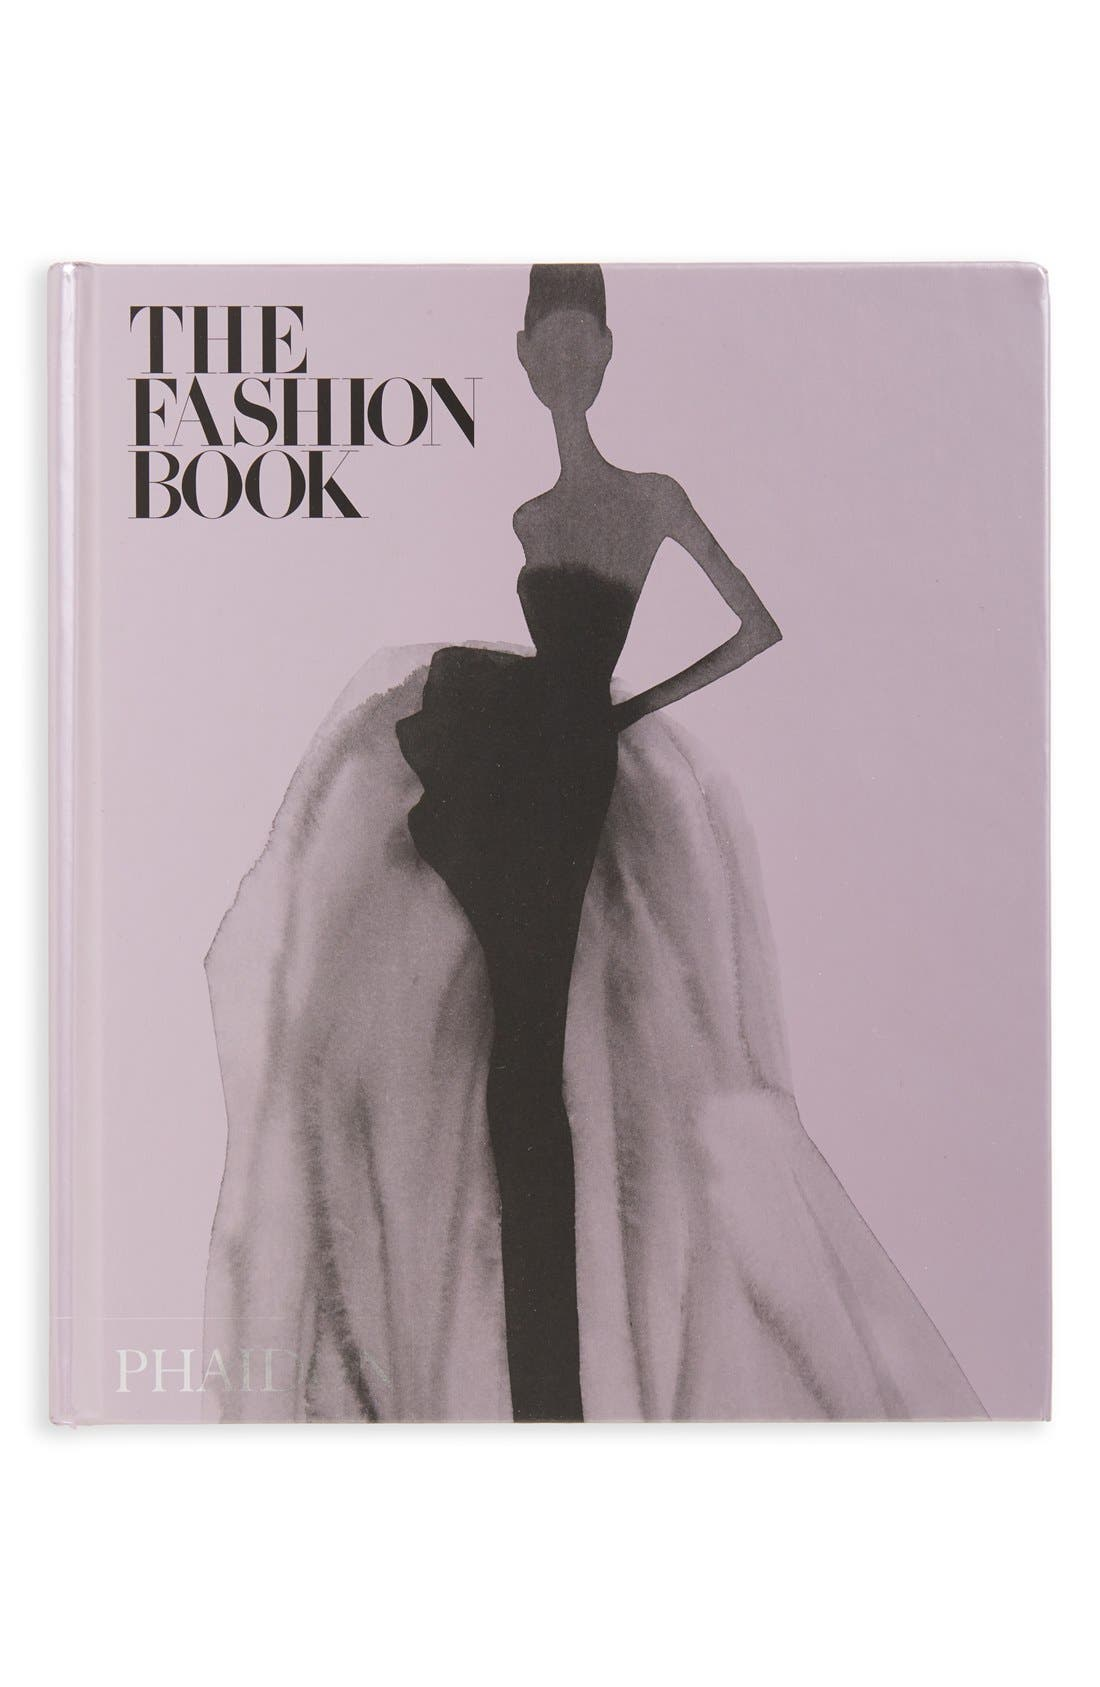 'The Fashion Book' Book